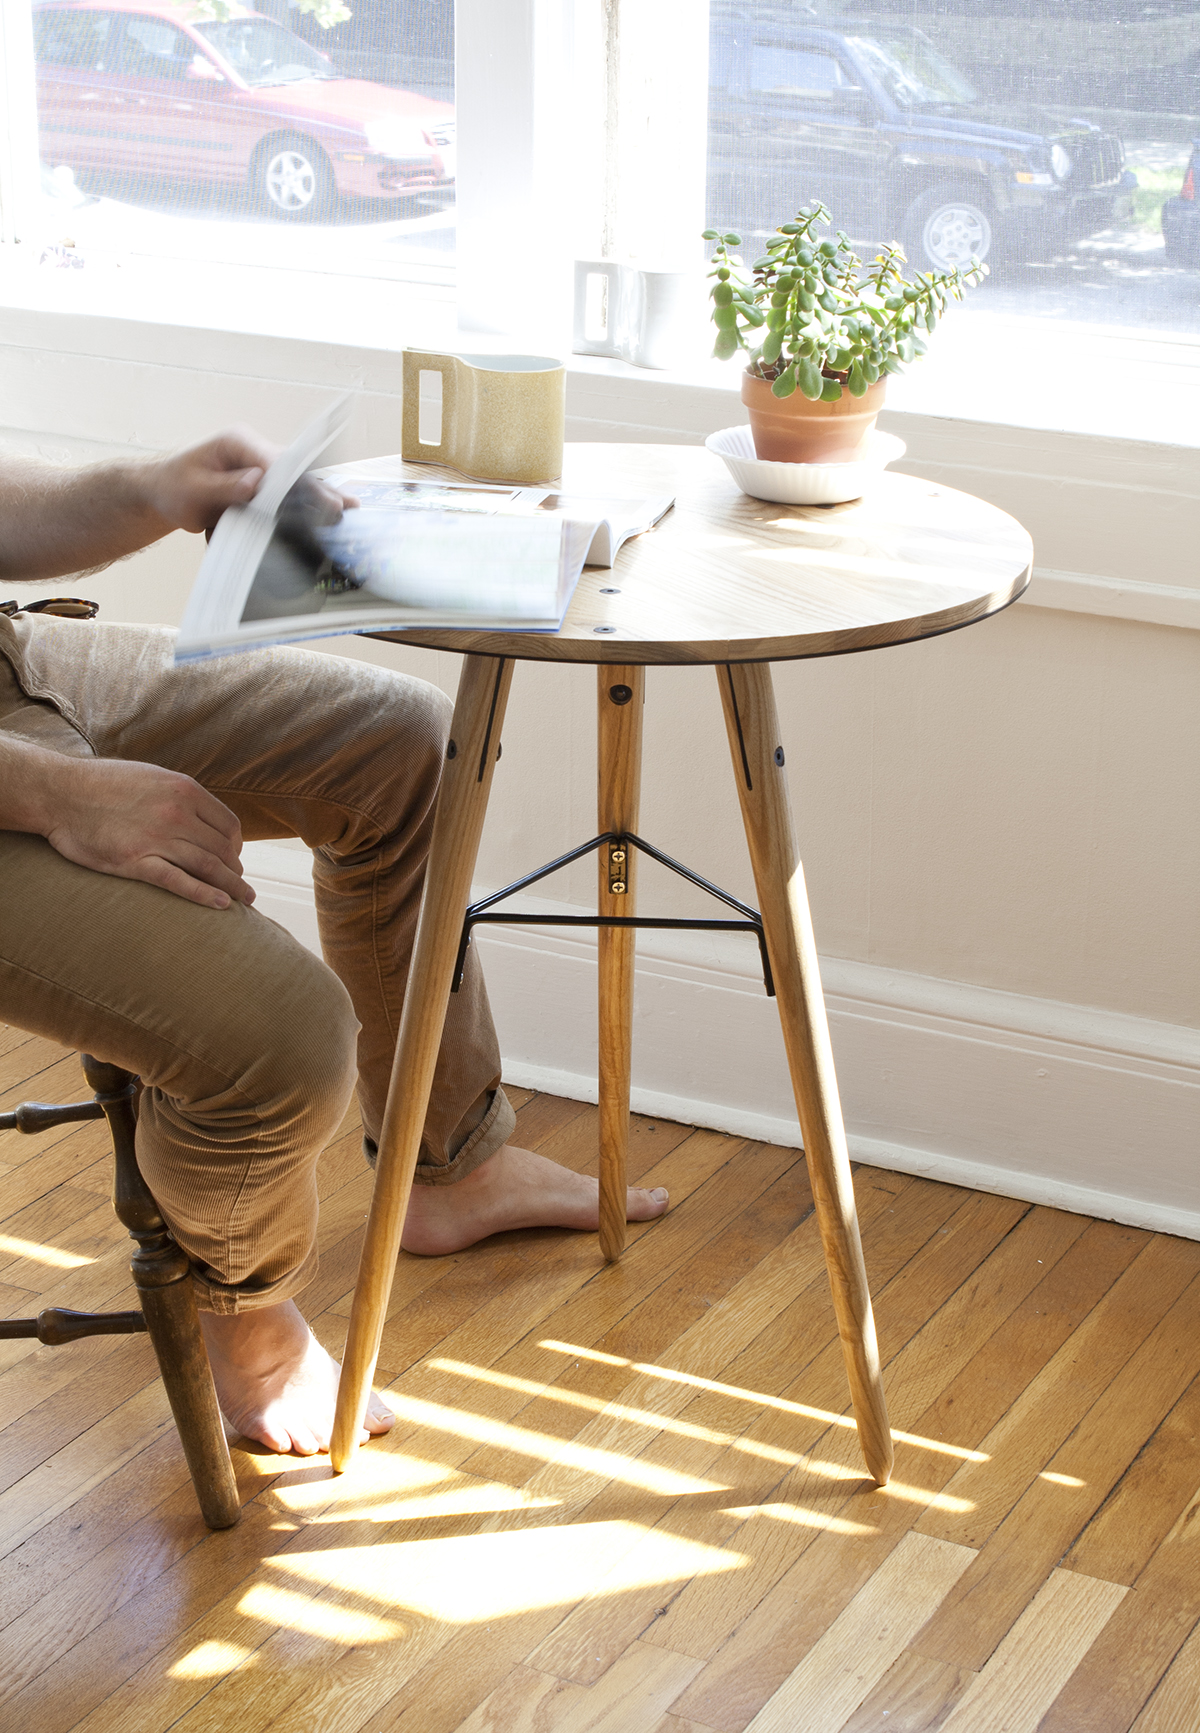 2S-CafeTable-Home.jpg